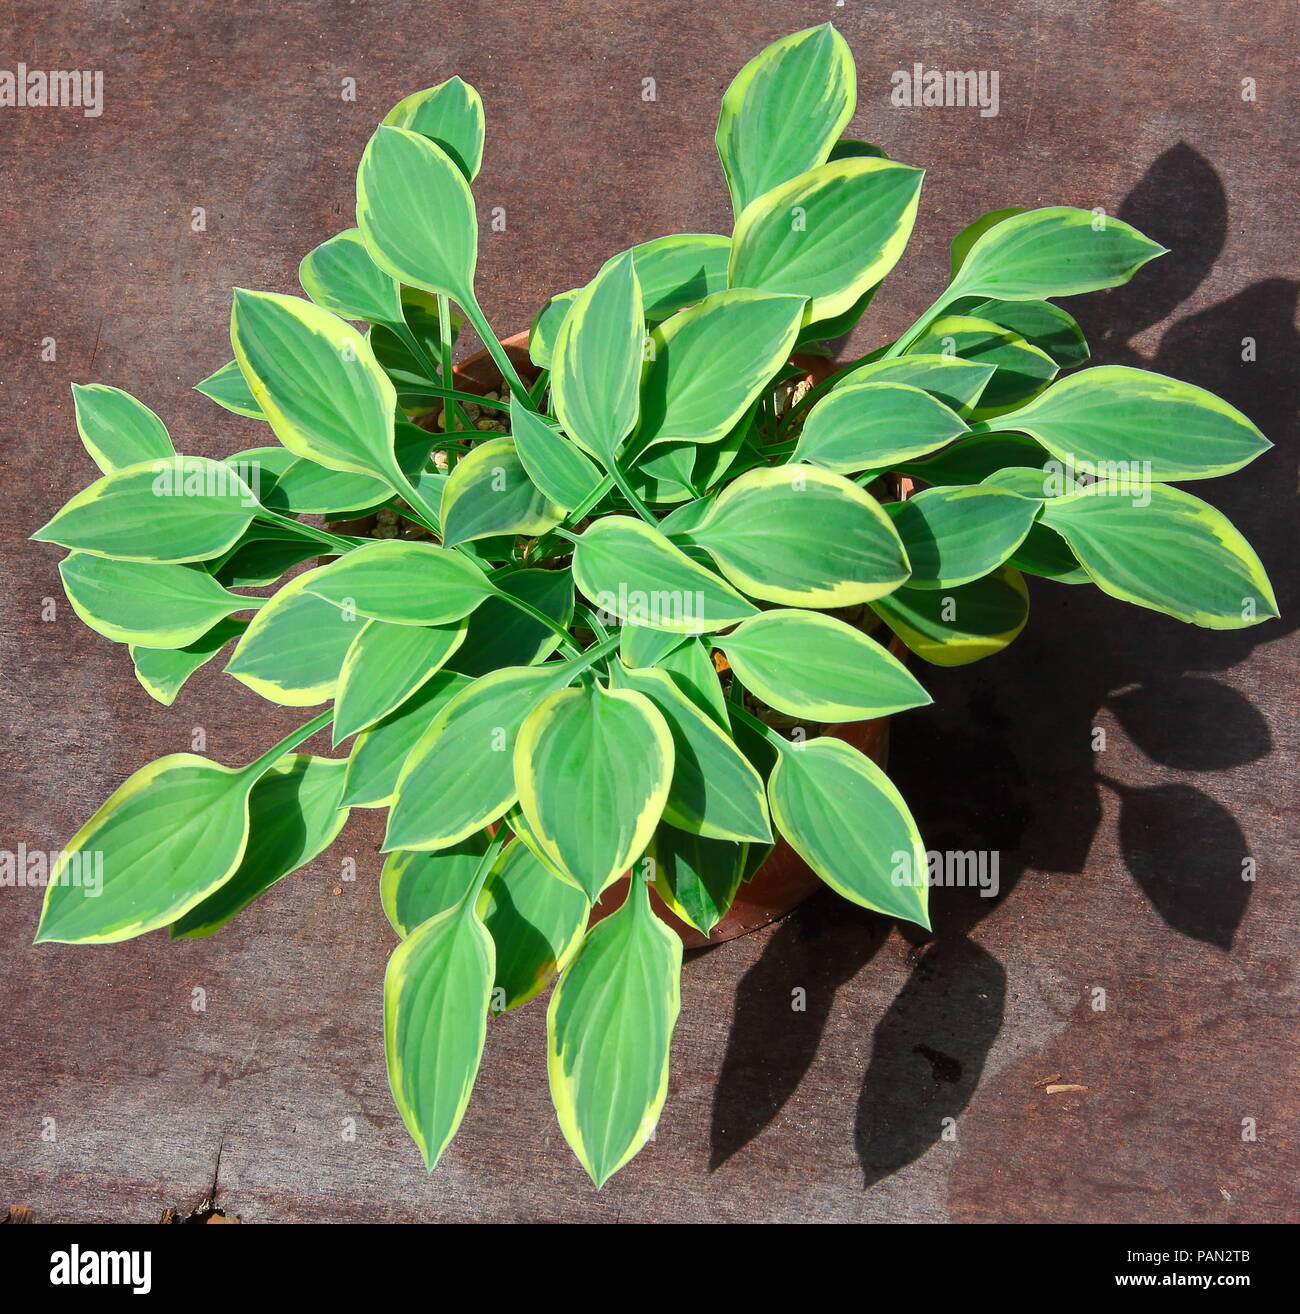 The beautiful Hosta plant named 'Hush Puppie' as part of the British National collection showing its delicate yellow edged green ribbed leaves. - Stock Image